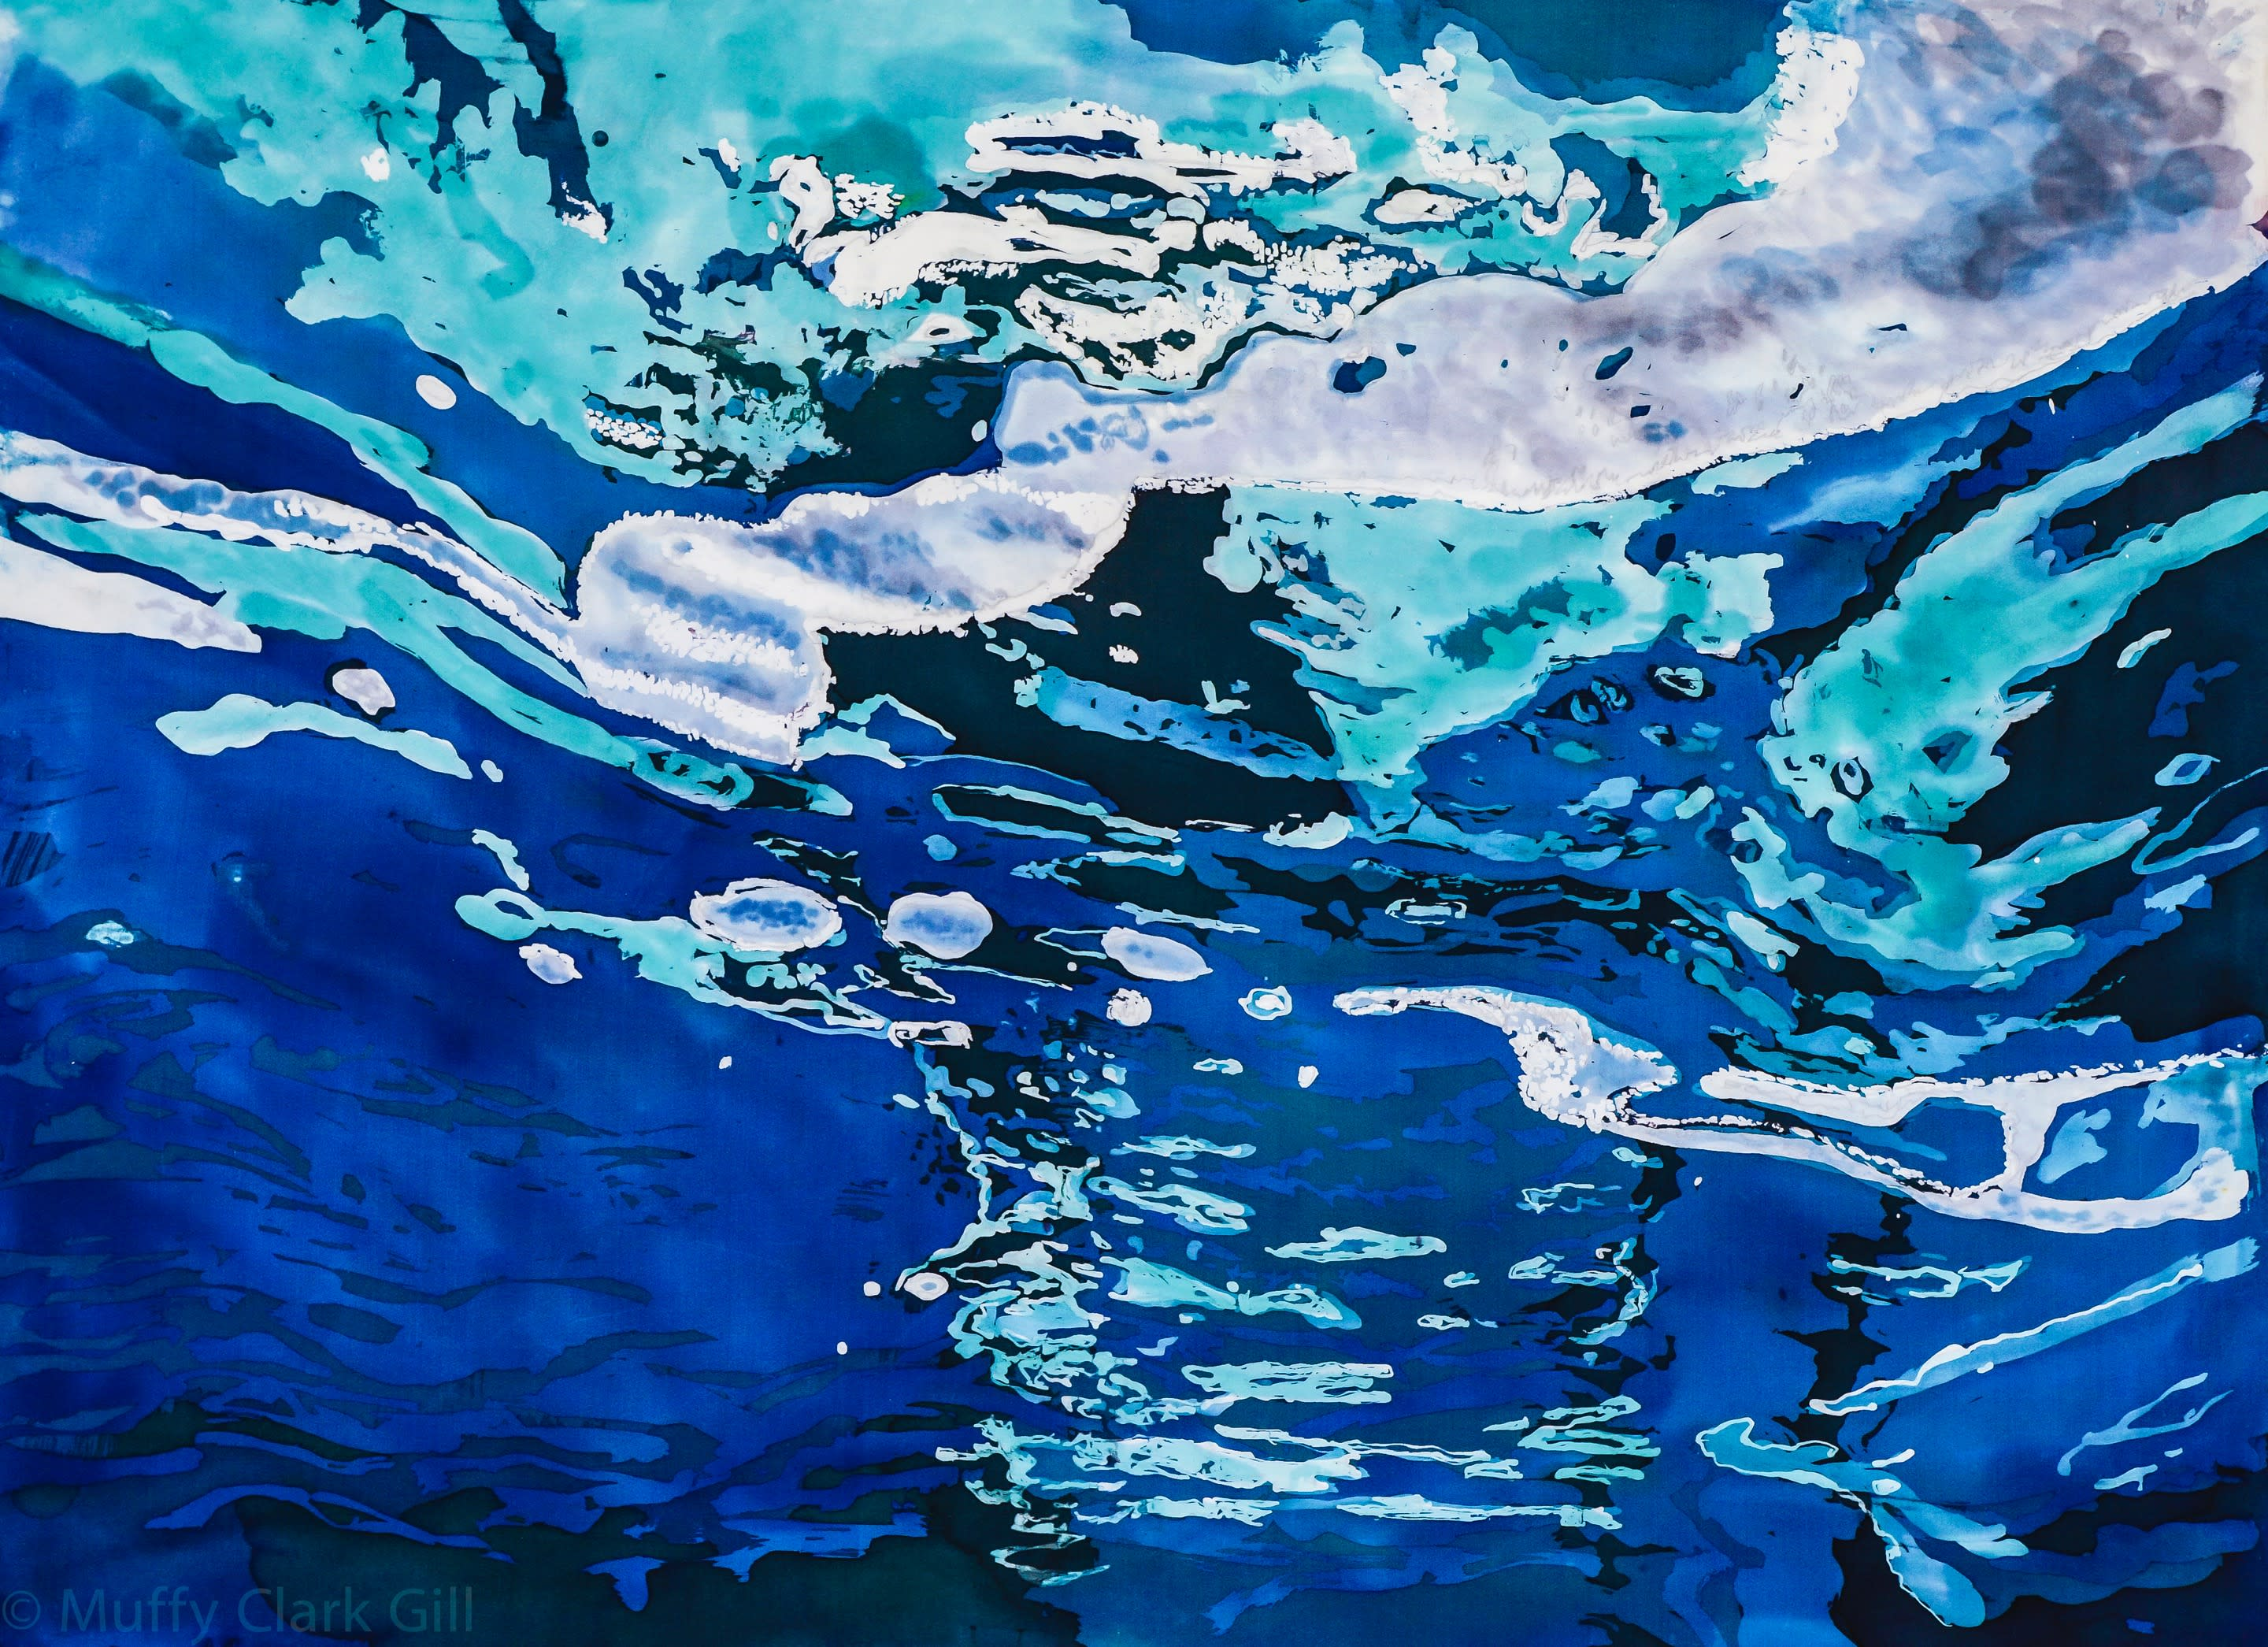 Agua xxii  blue waters 2015 rozome on silk  32 x 40 in version 2 uijypj